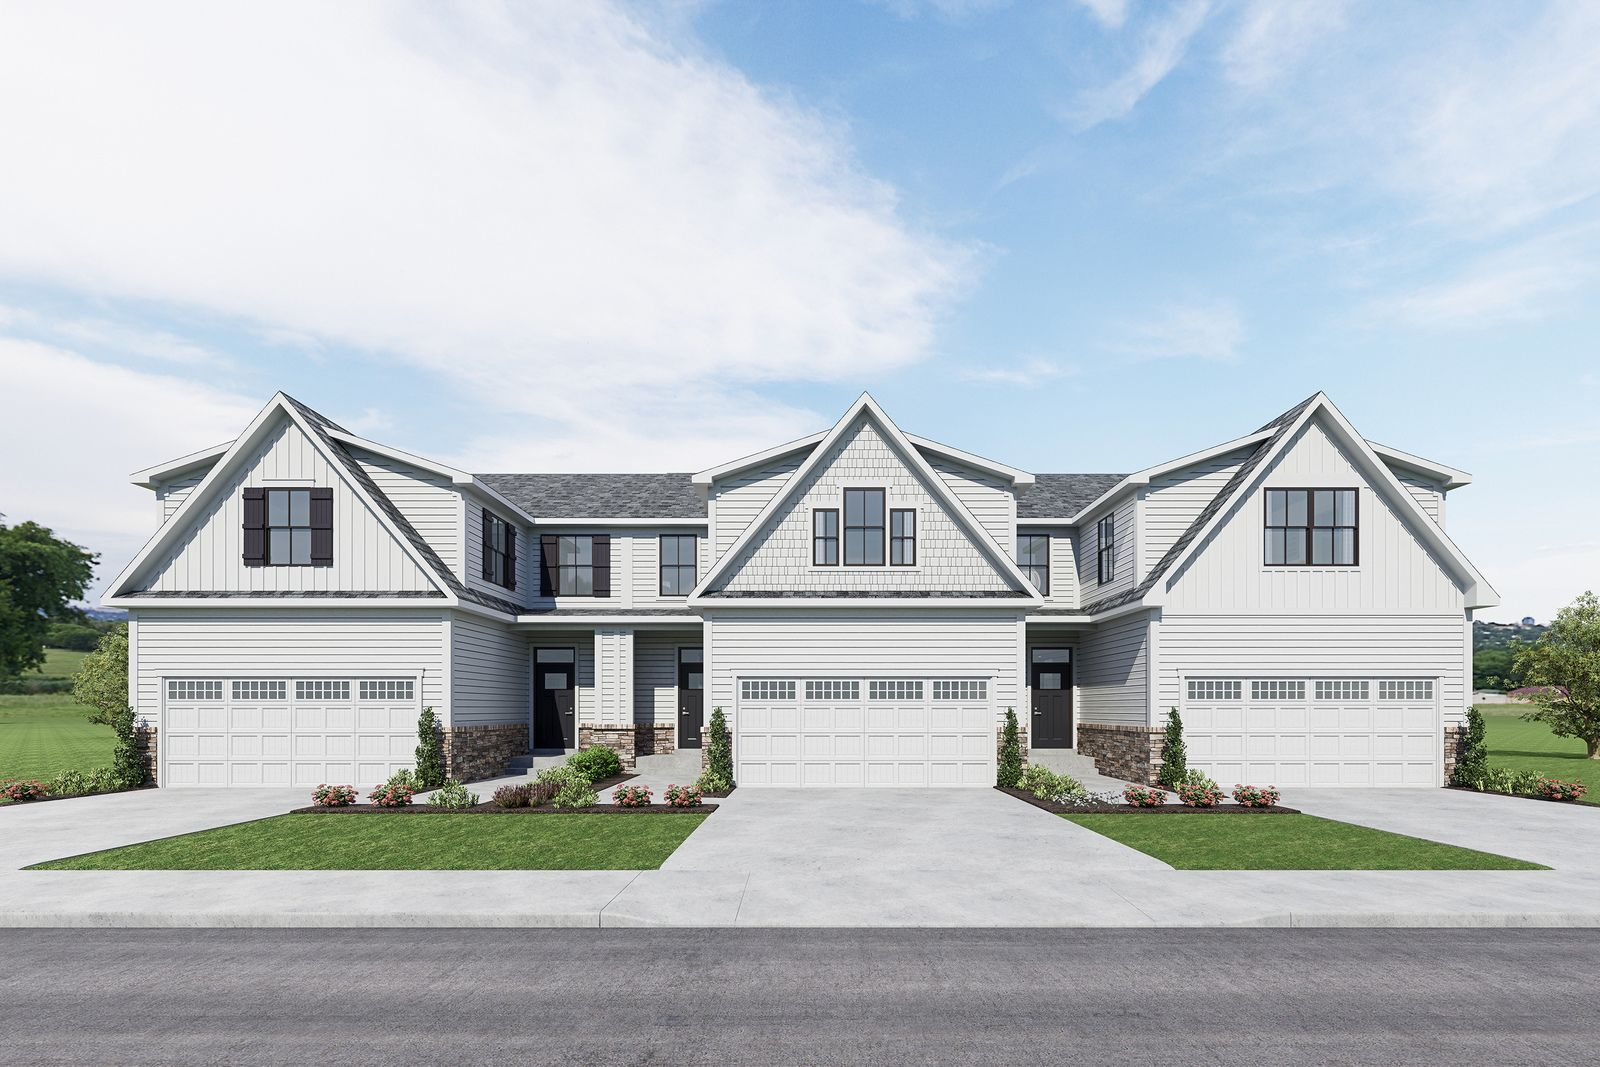 BEST PRICED TOWNHOMES IN THE AREA WITH FUTURE AMENITIES. FROM $280's